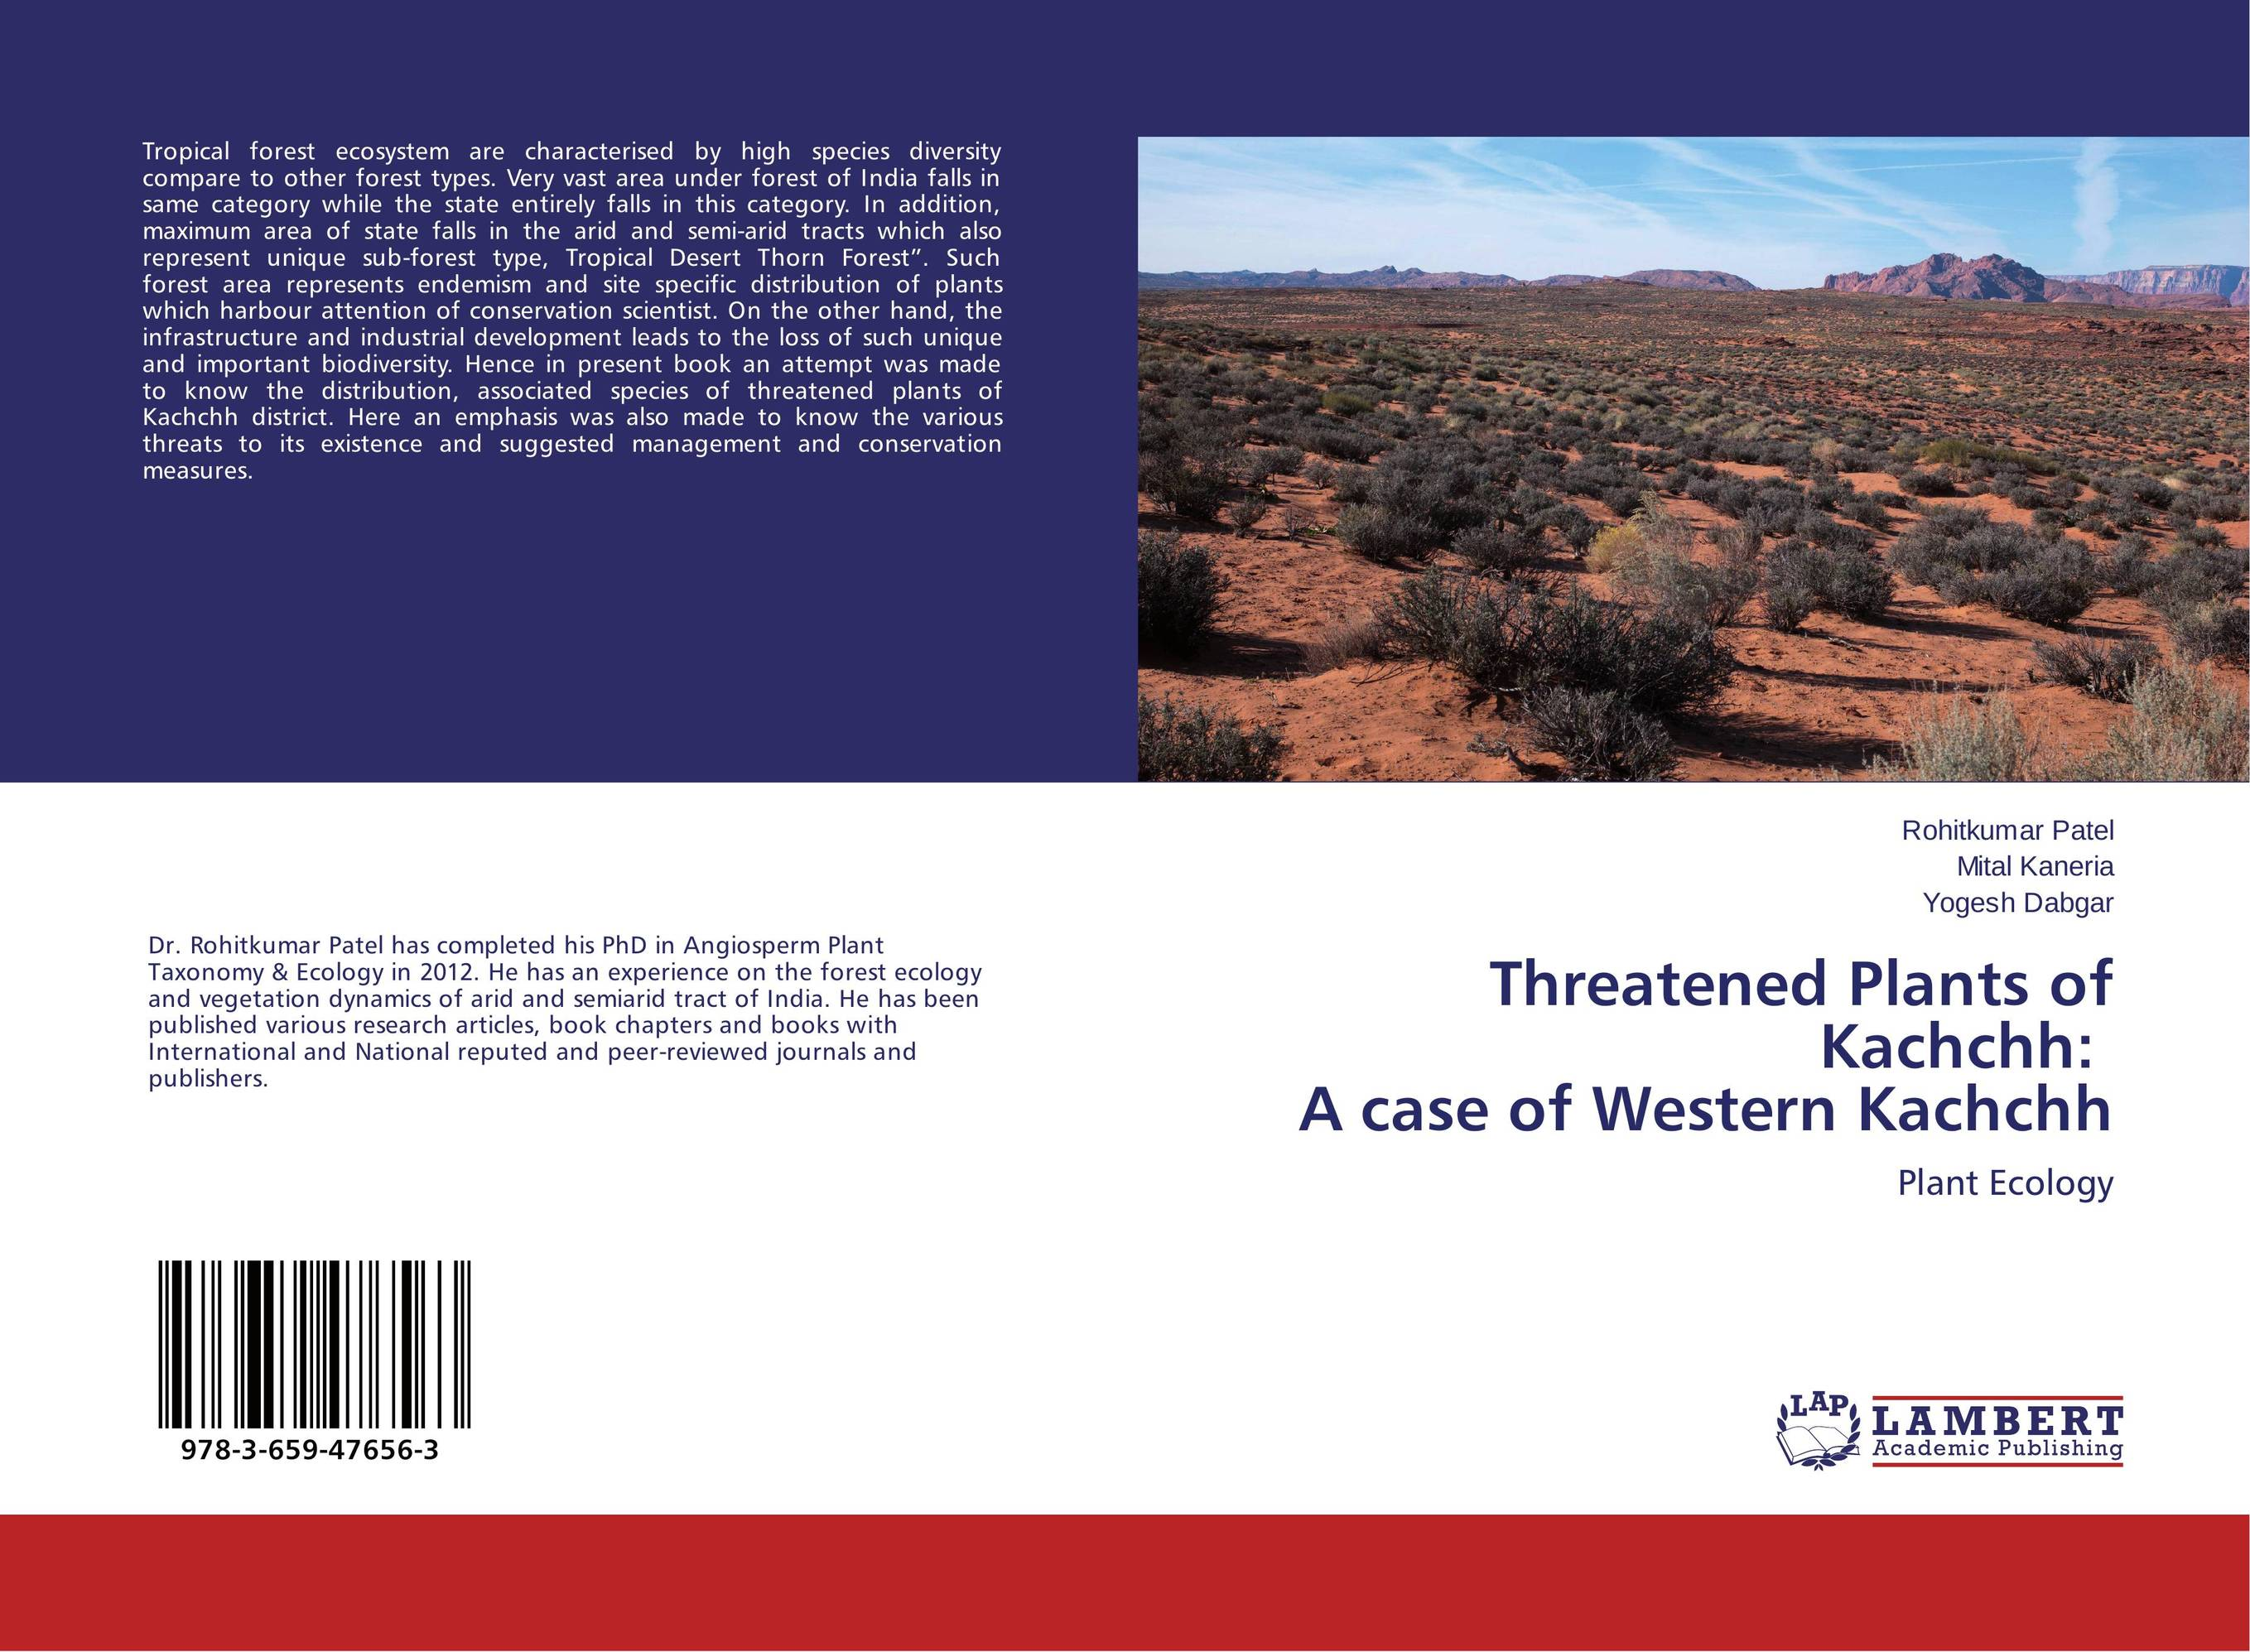 Threatened Plants of Kachchh: A case of Western Kachchh affair of state an